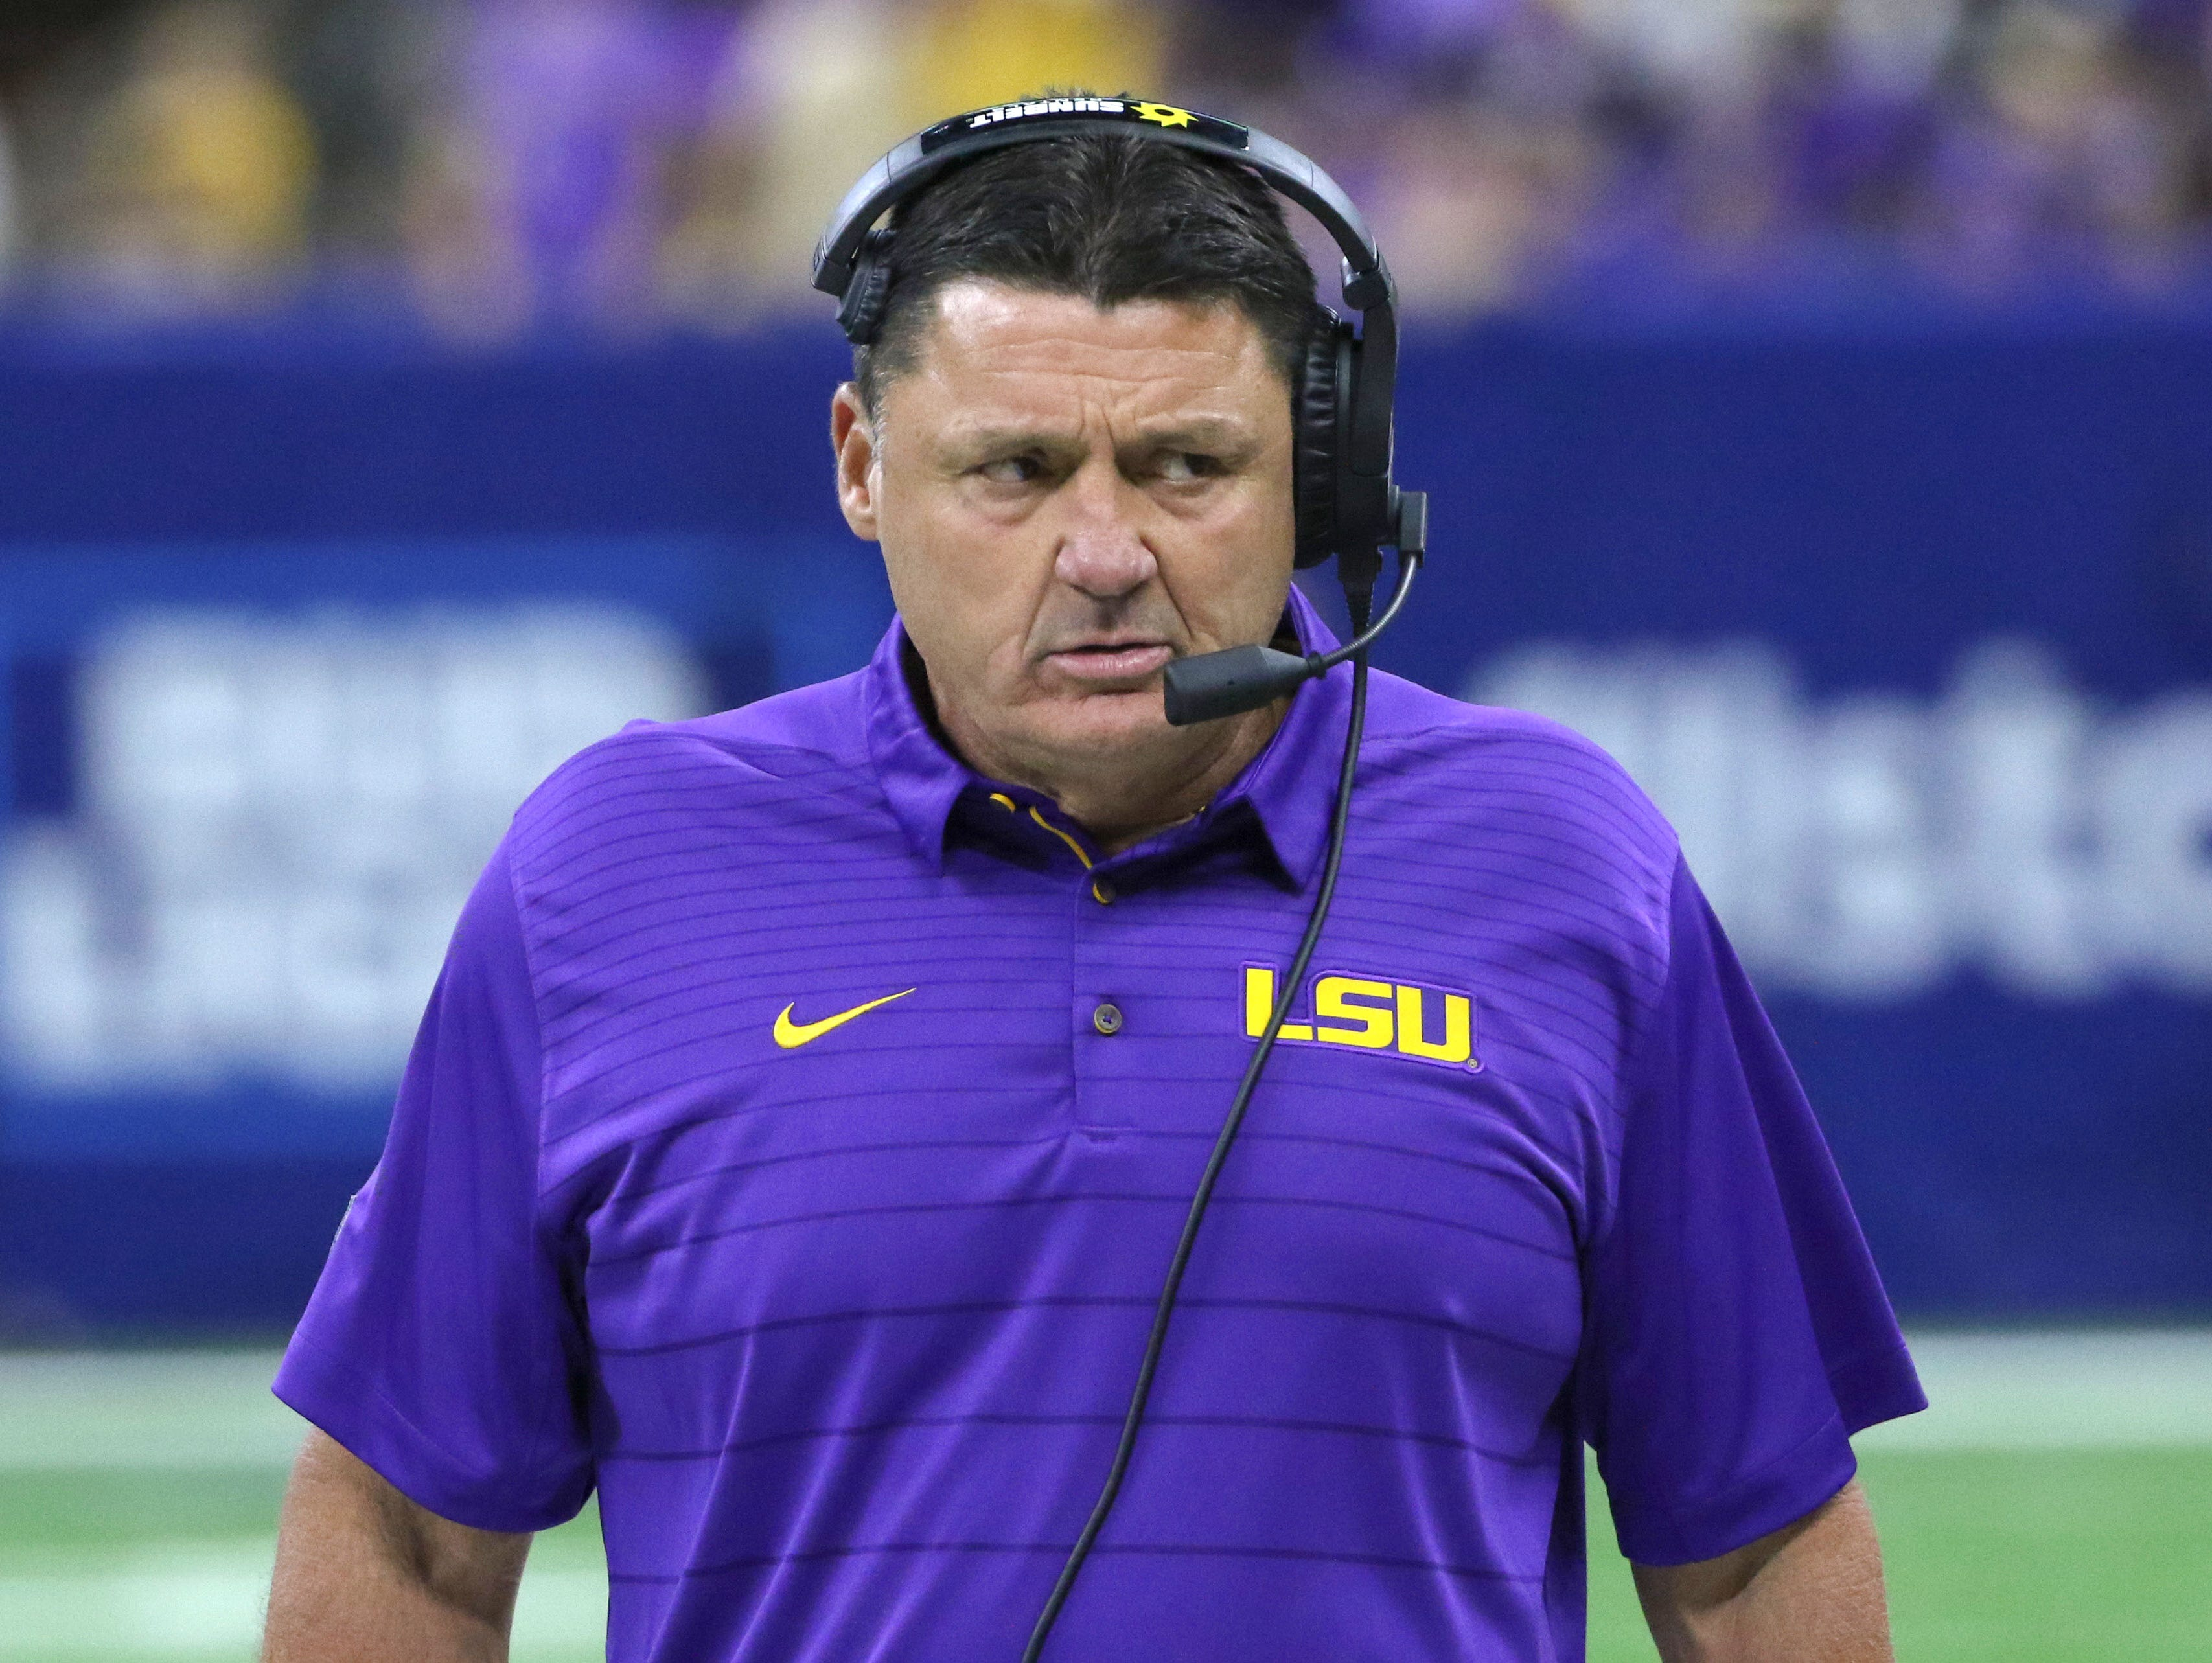 LSU coach Ed Orgeron is under fire after his team lost to Troy.